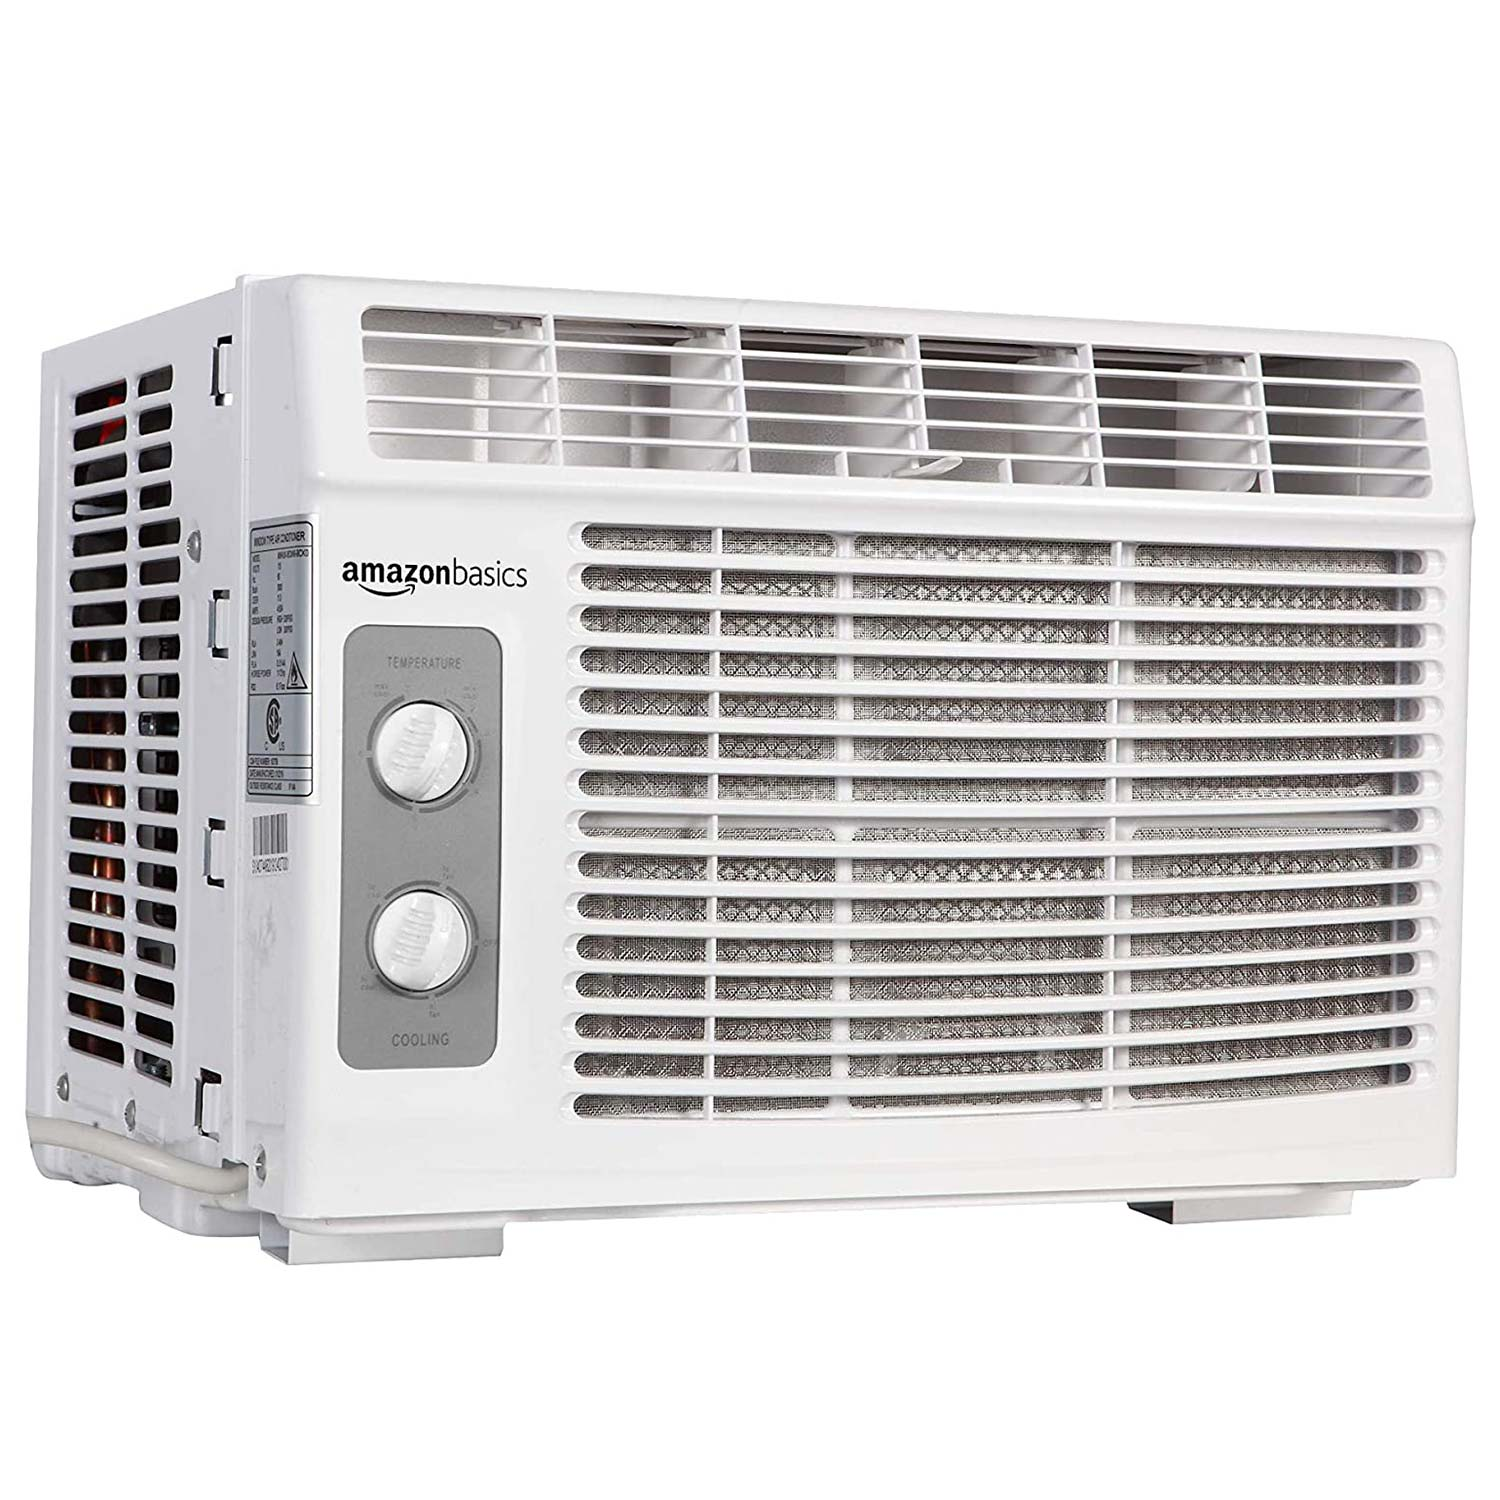 Amazon Basics Window-Mounted Air Conditioner with Mechanical Control